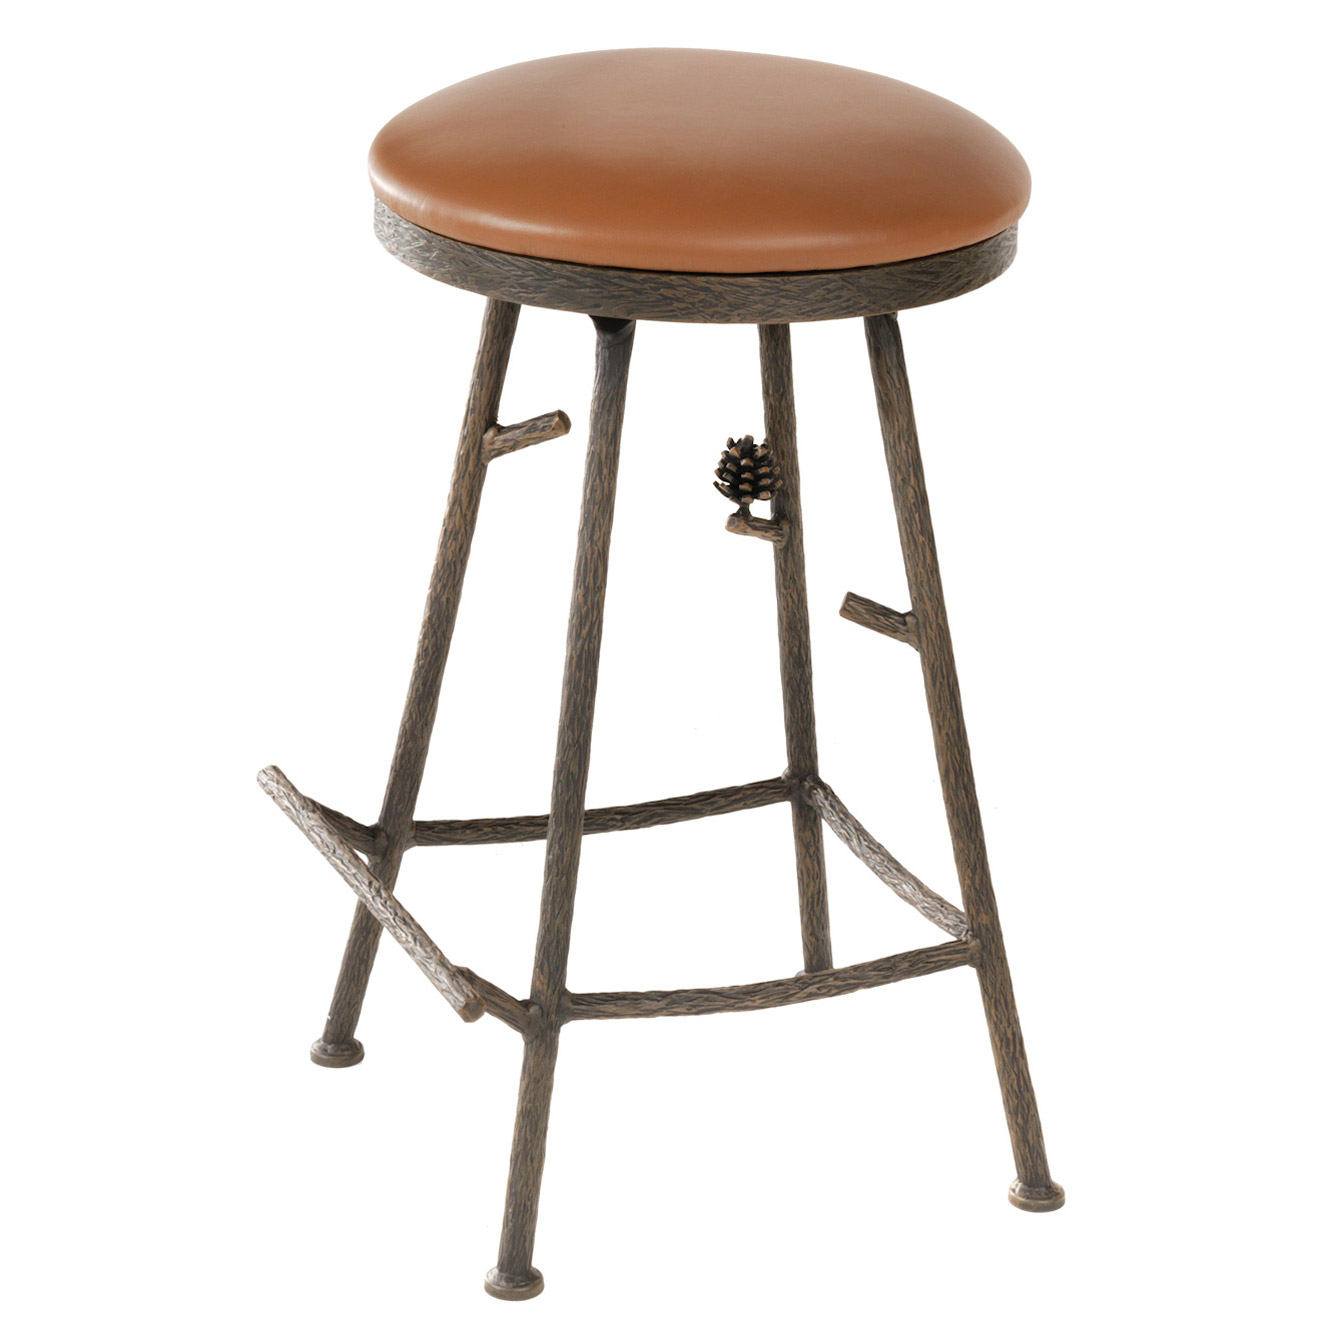 Wrought Iron Barstool Backless Rustic Pine Bar Stool Swivel Option